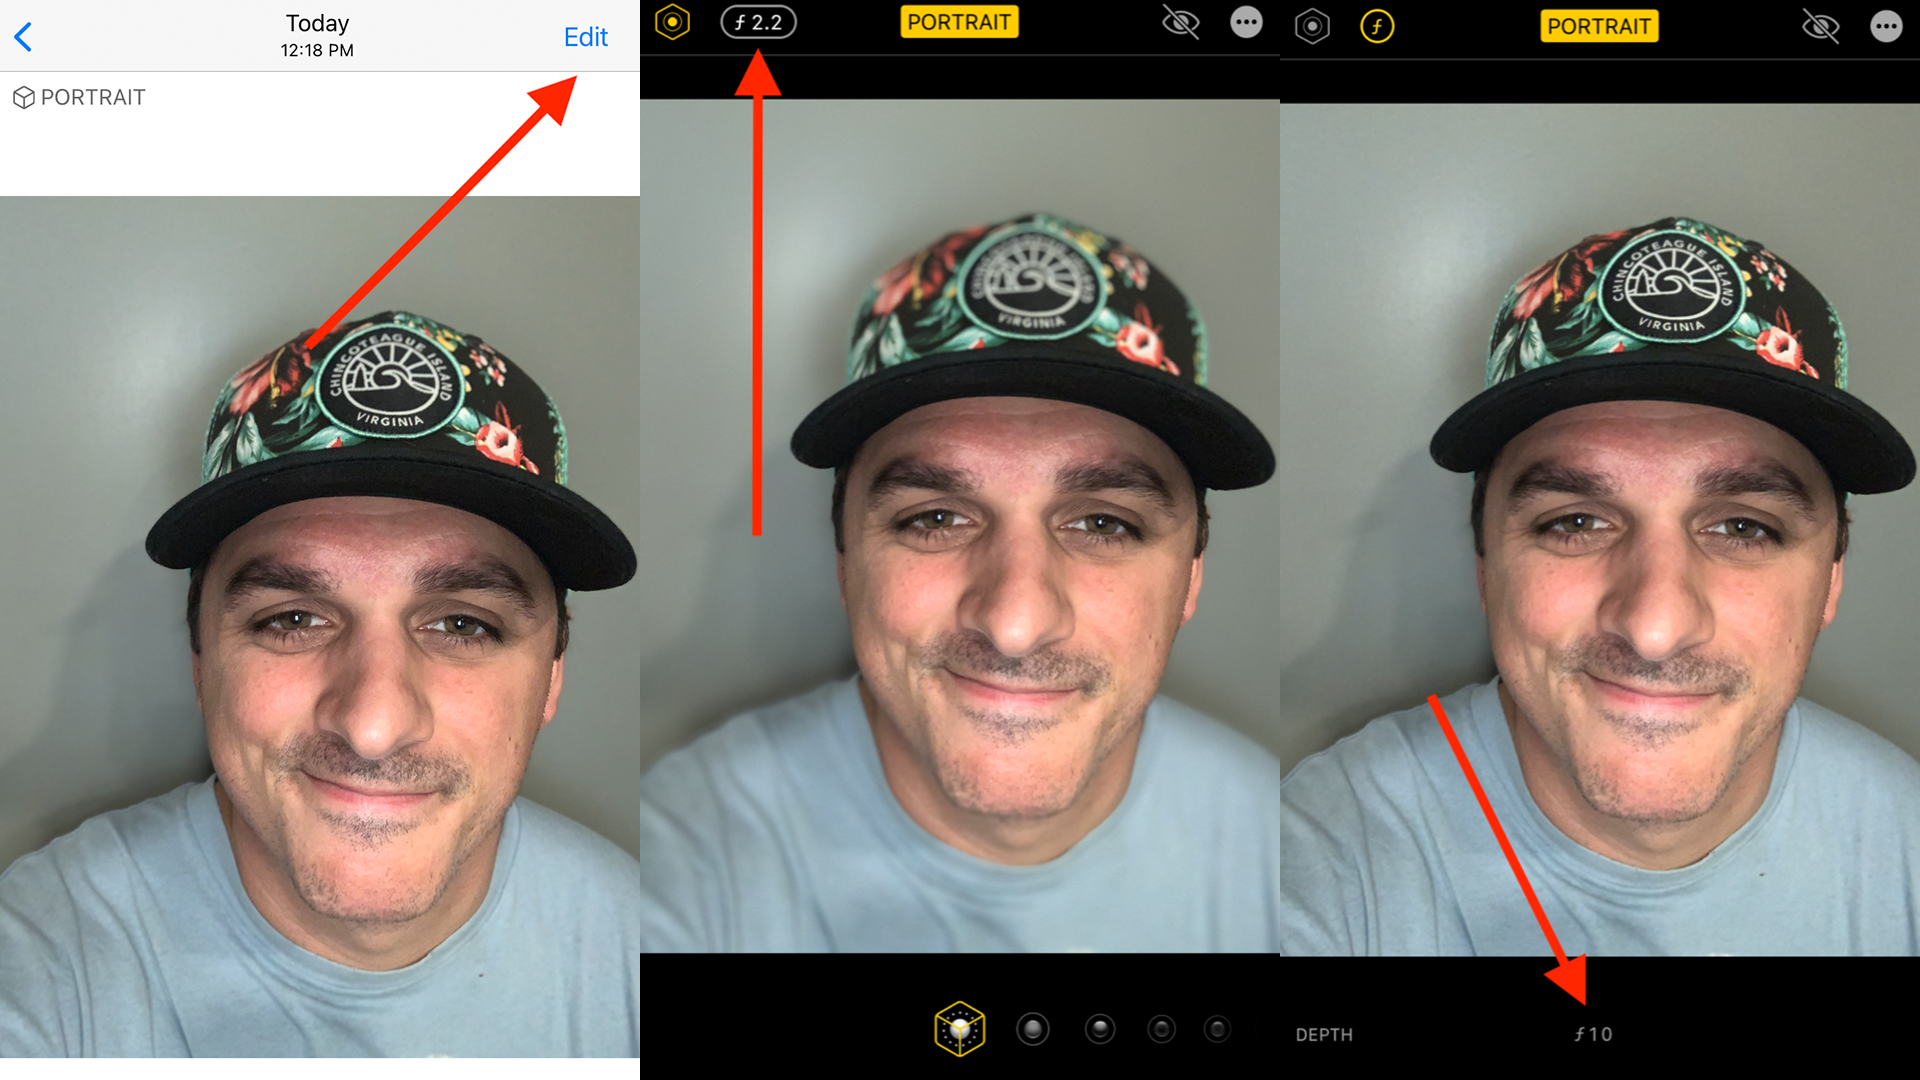 mashable.com - Tim Marcin - How to edit the blur in Portrait Mode on your iPhone